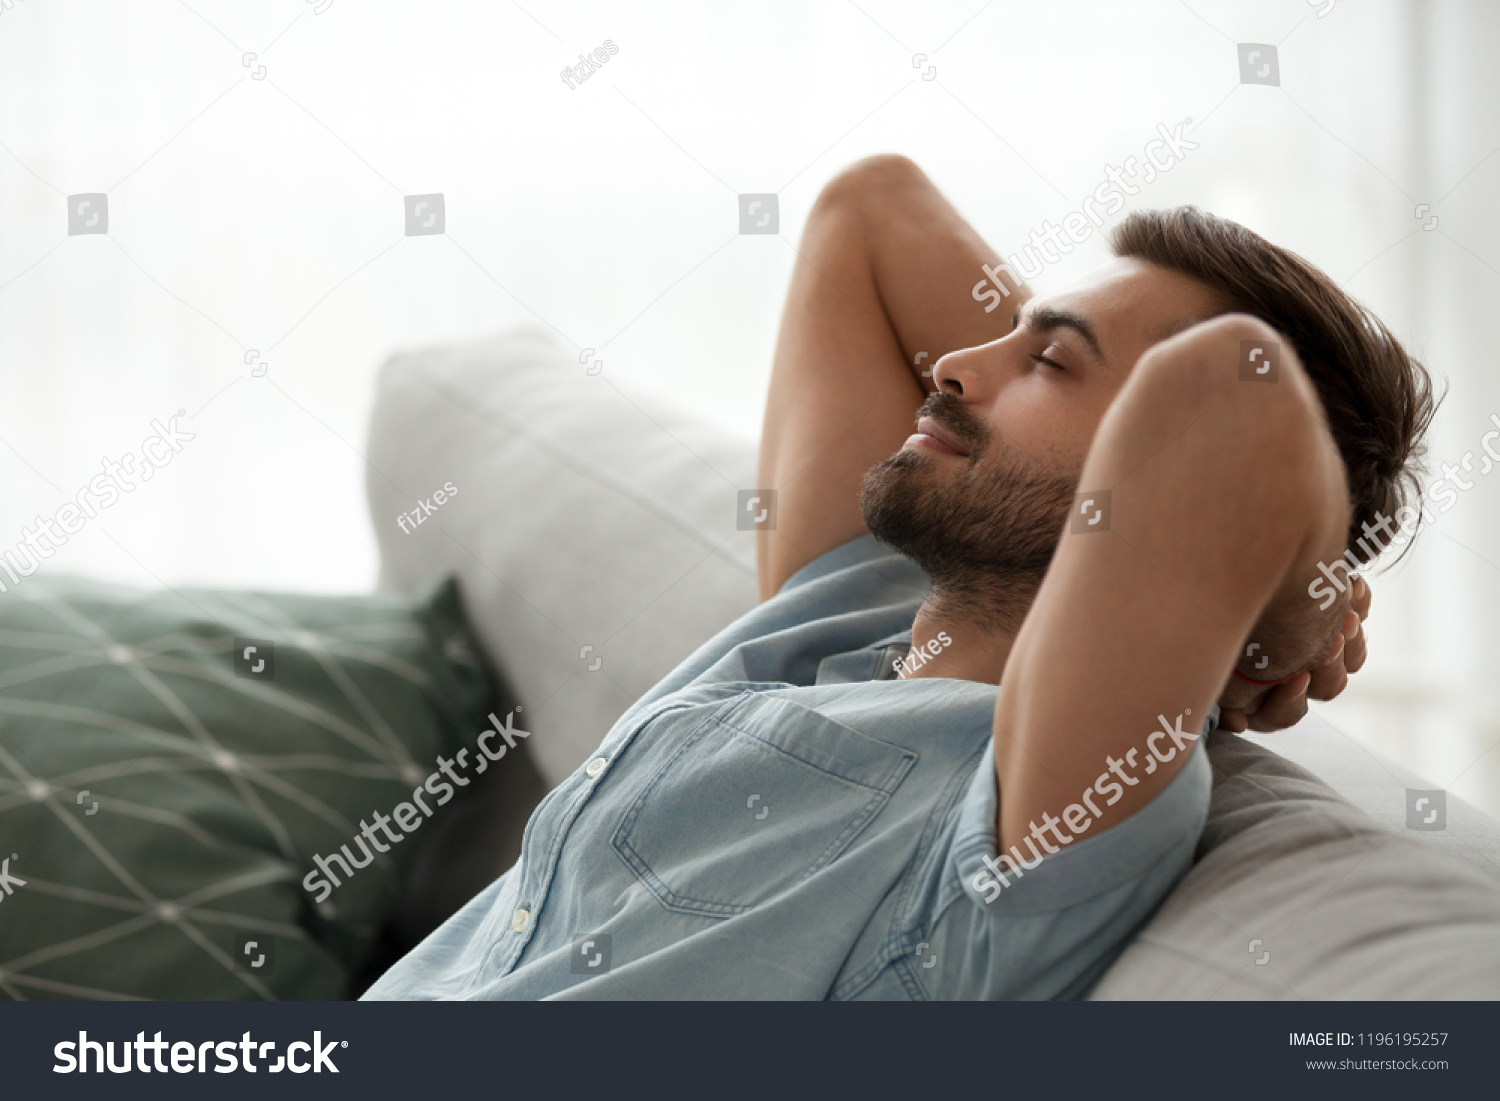 Close up side view serene man smiling sitting on couch at home. Male has a break after work or study closing eyes putting hands behind head relaxing thinking, feels happy breathing fresh air concept #1196195257